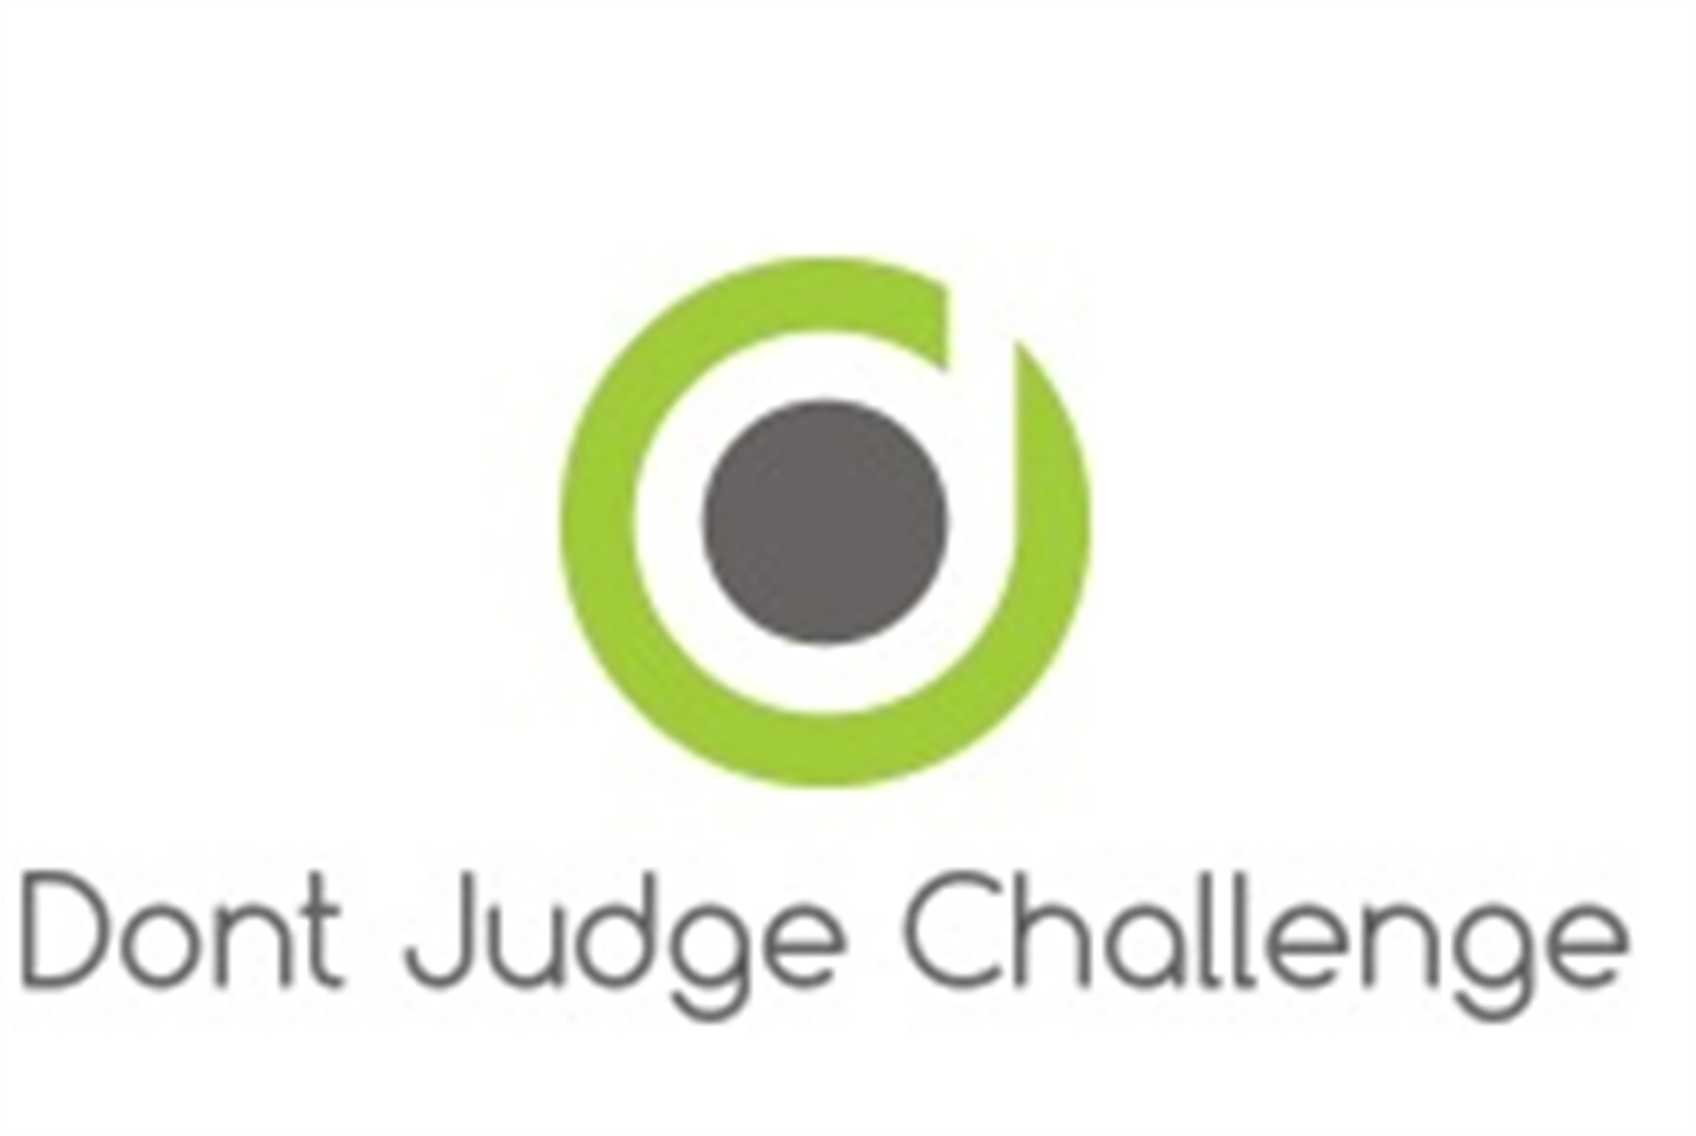 Dont Judge Challenge